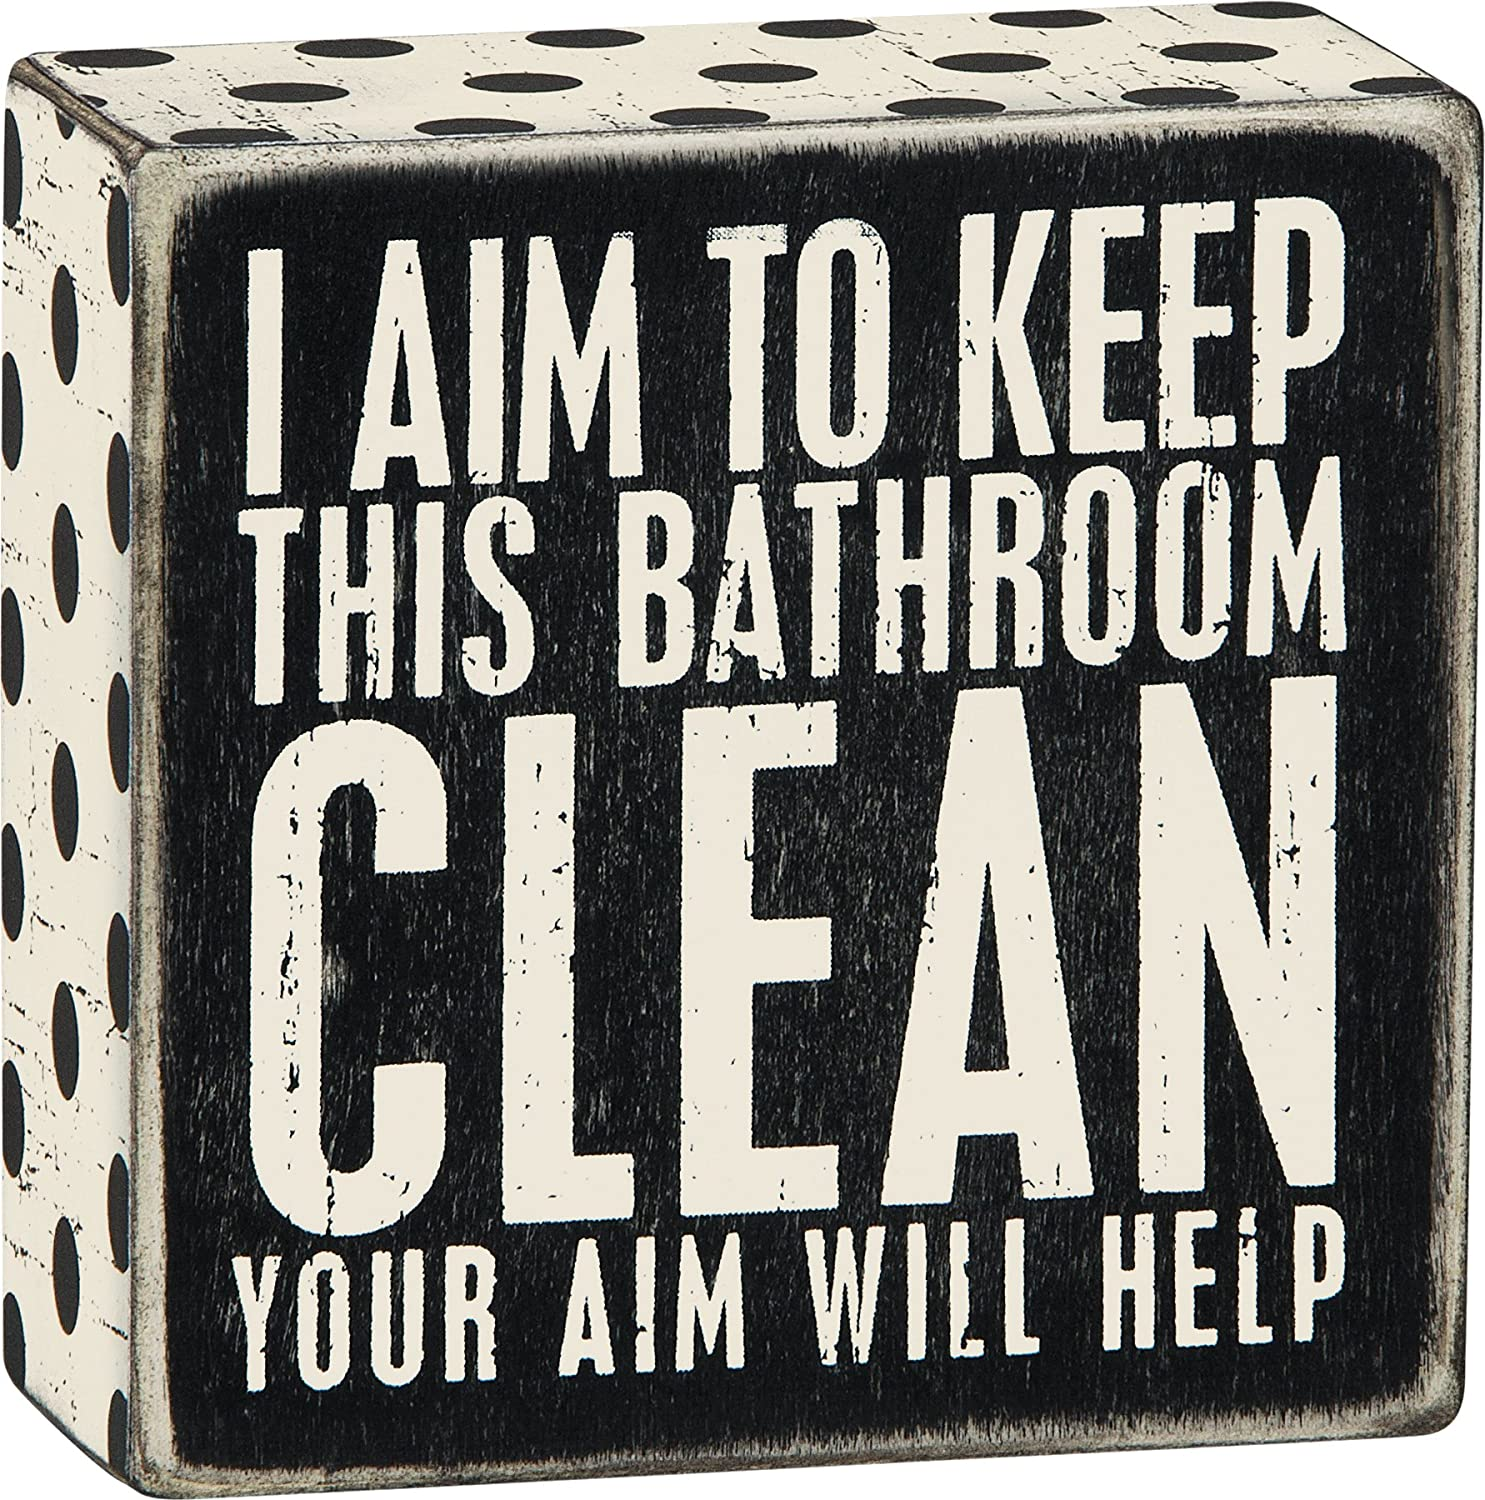 Primitives by Kathy 1 X I Aim to Keep This Bathroom Clean Your Aim Will Help Wooden Sign